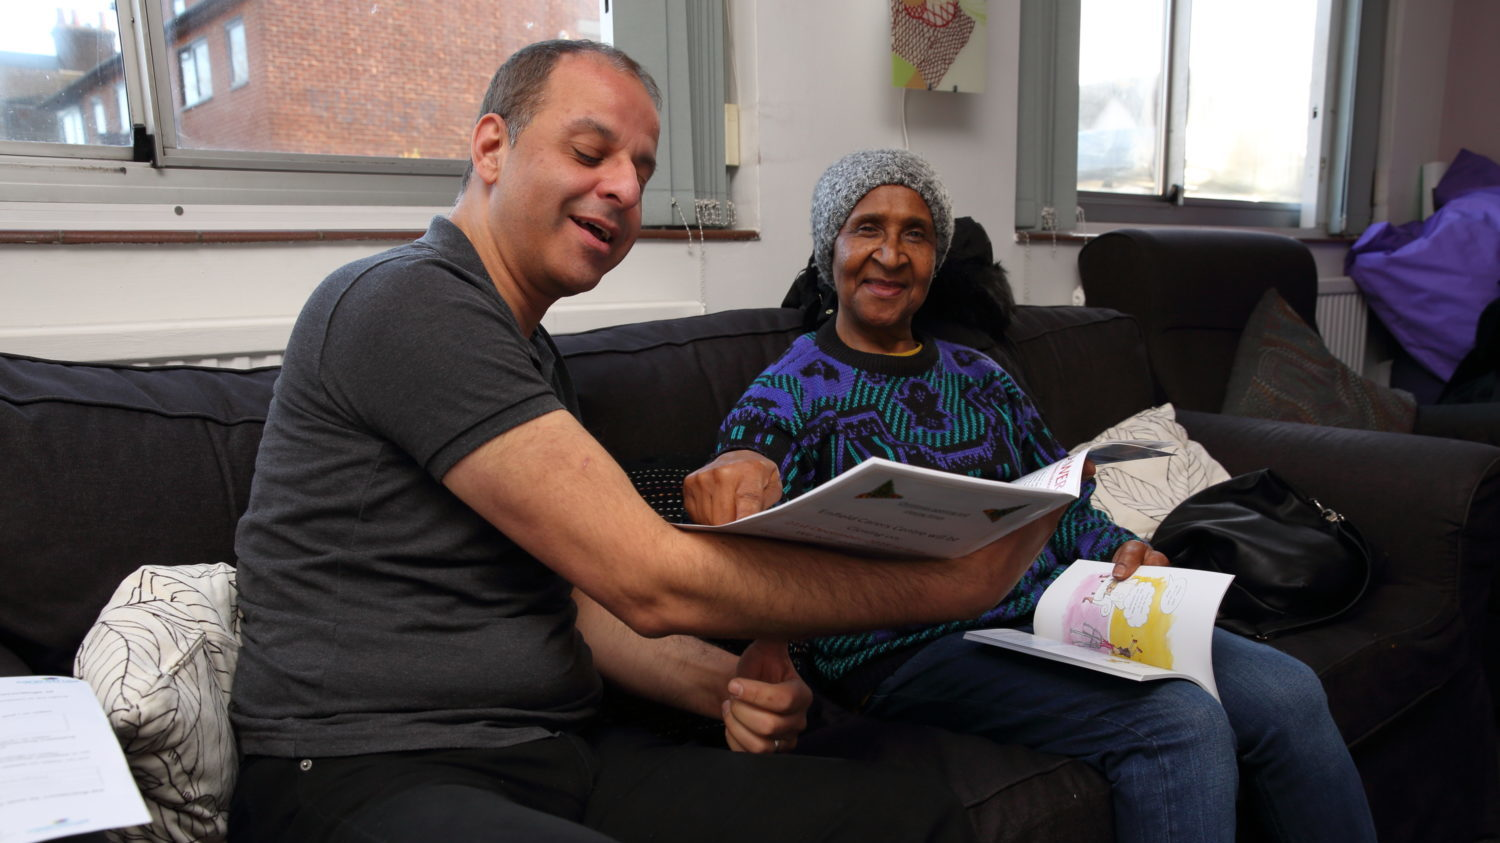 Enfield Carers Centre helps support more than 6,500 local carers